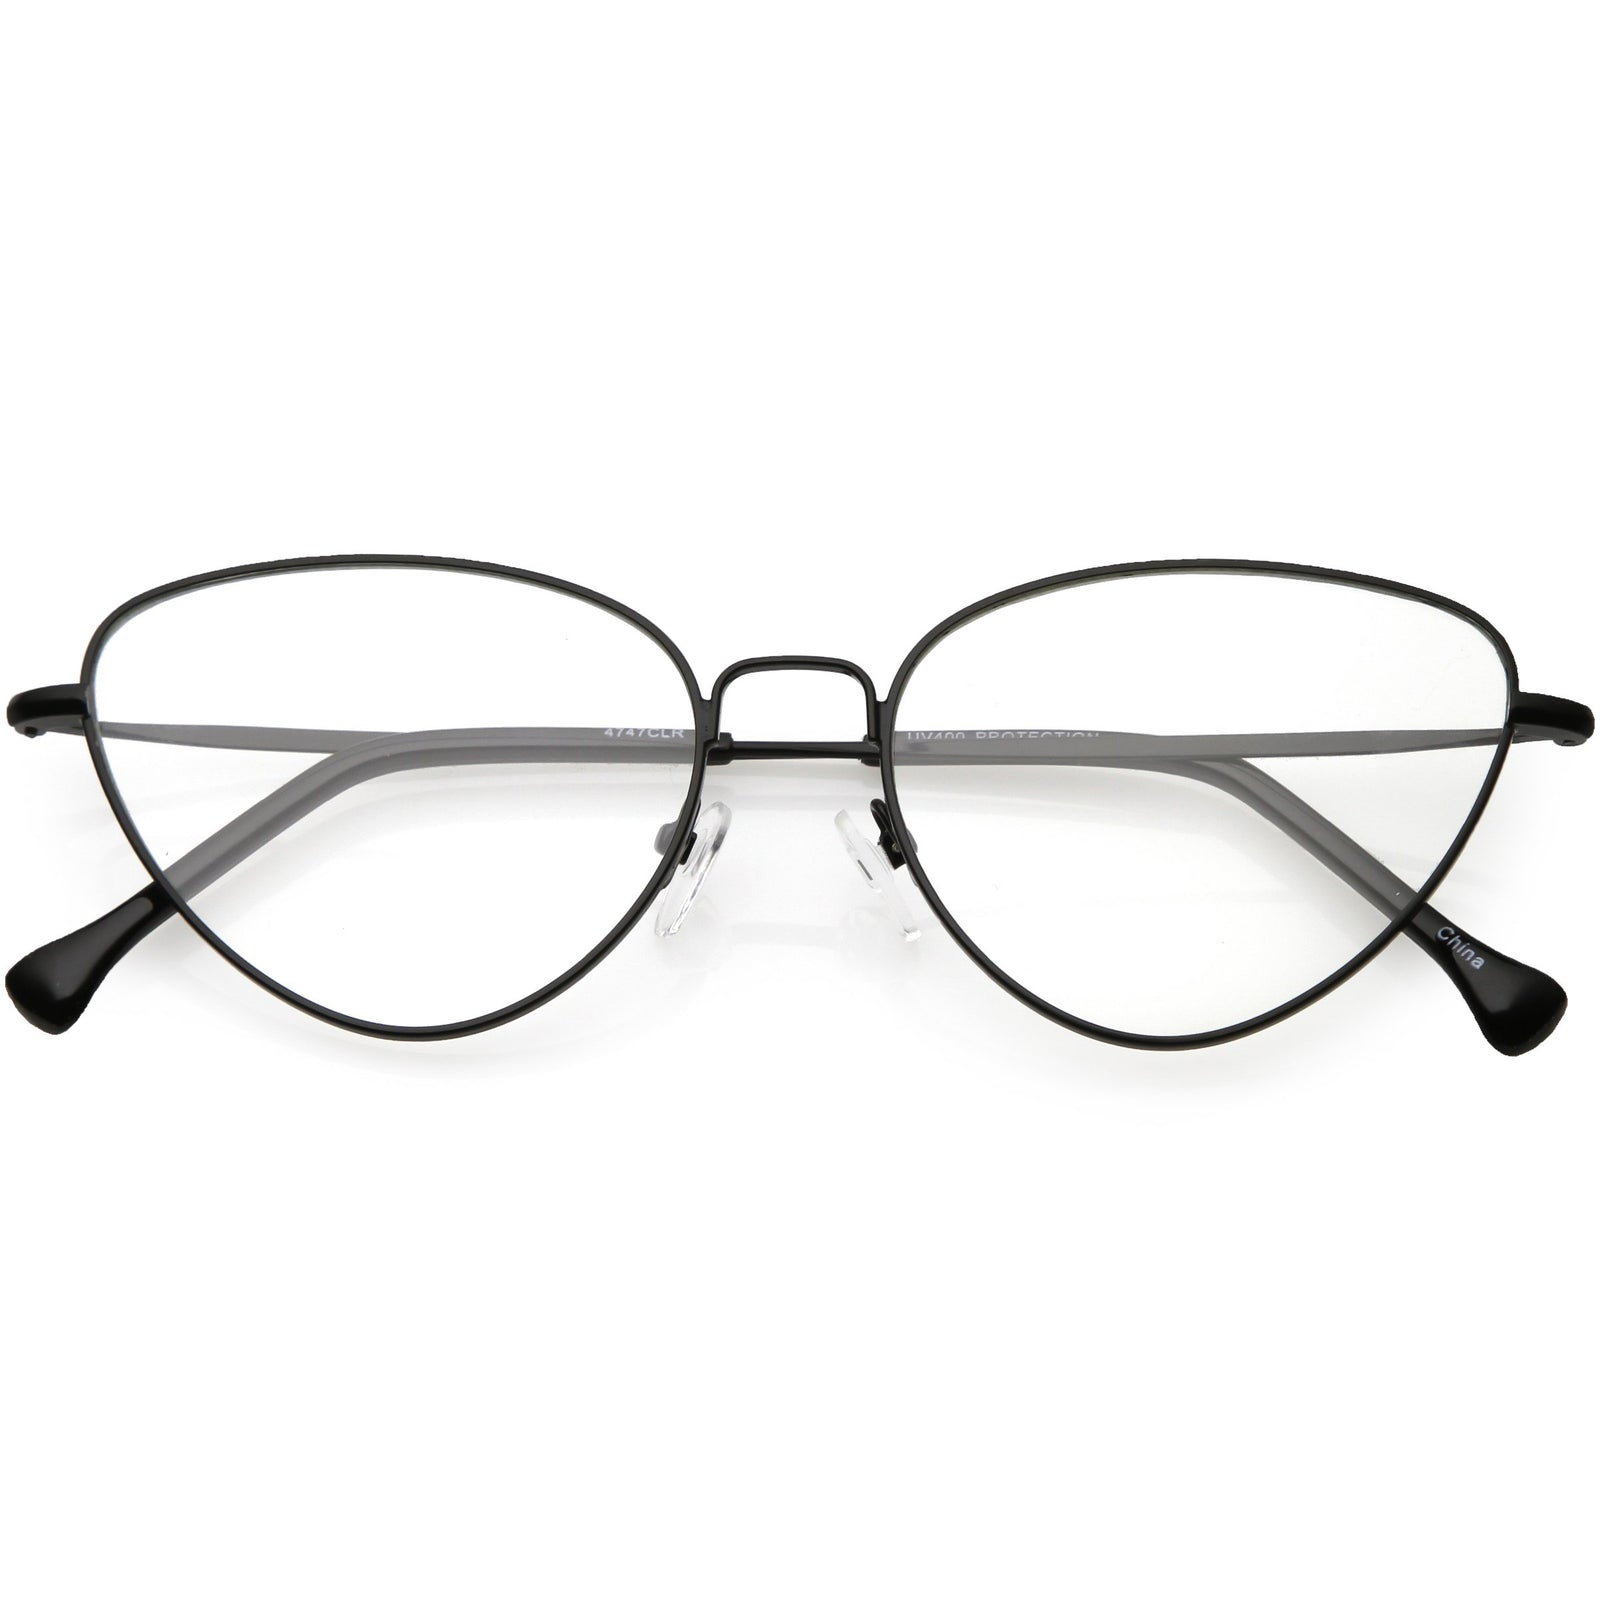 c0ab8ba7b6f6 Women s Slim Metal Wire Clear Flat Lens Cat Eye Glasses C599